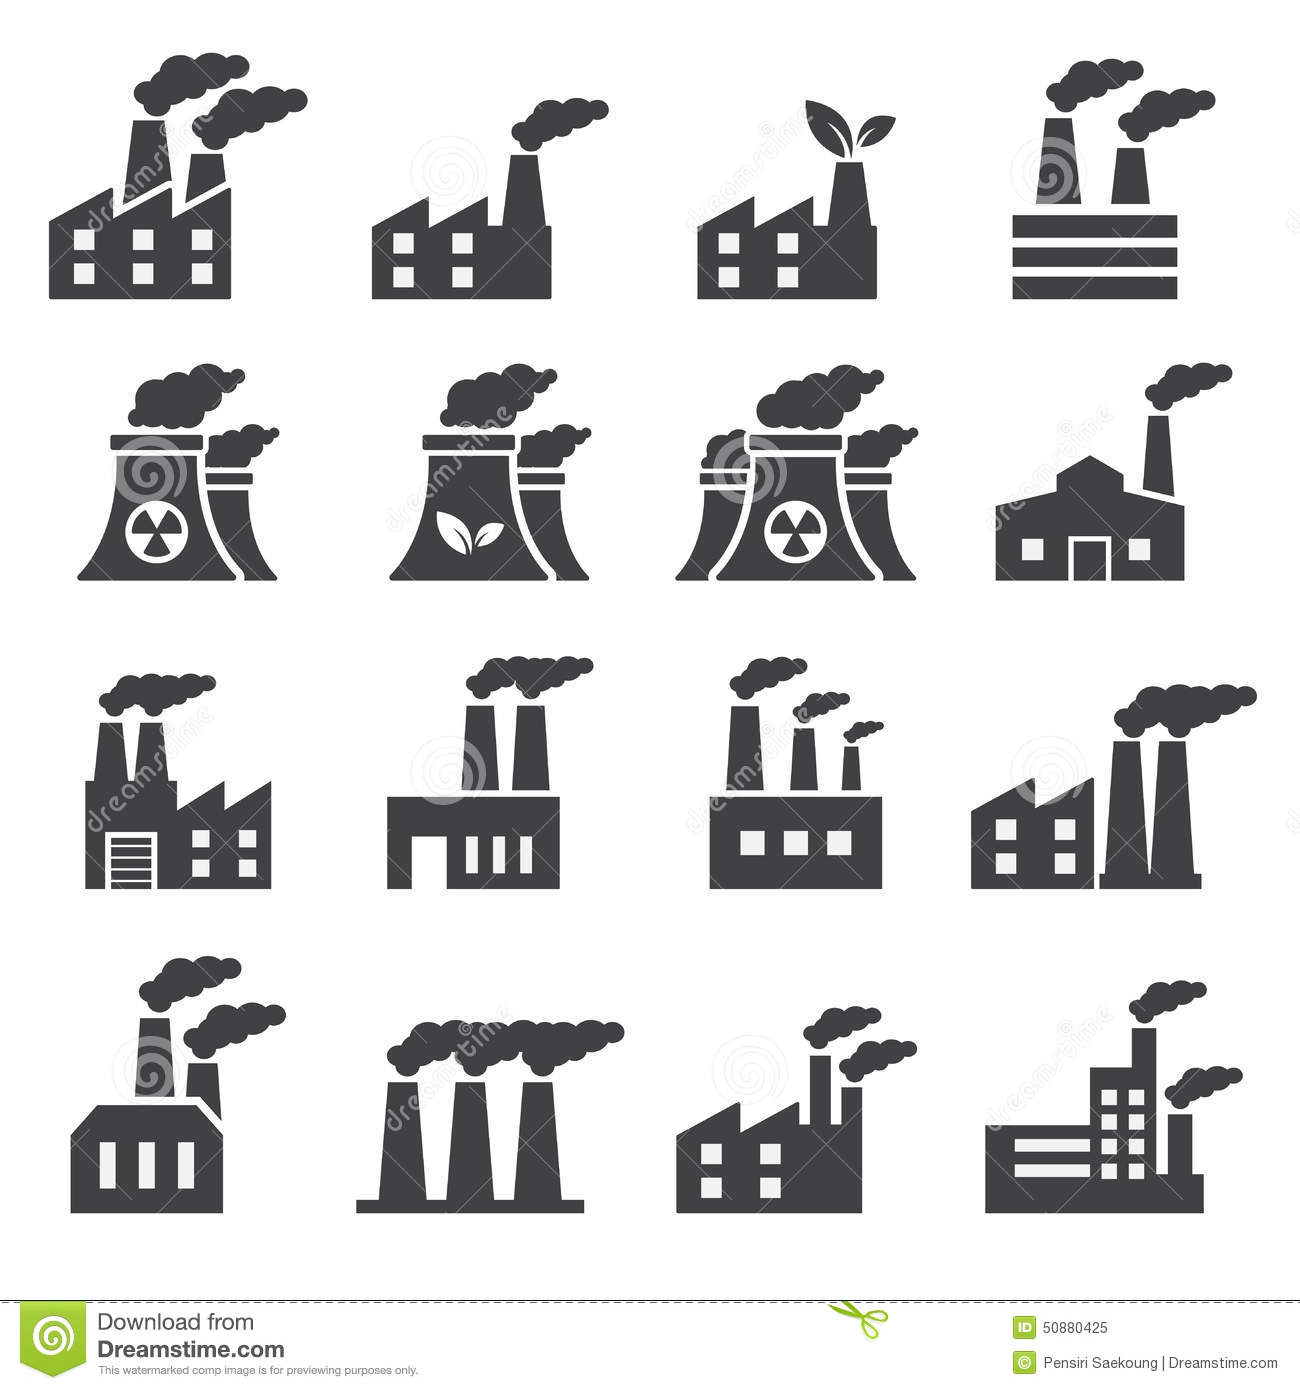 498945008 additionally odicis also Distribution  work Diagram furthermore 564268474 likewise Industrial. on refinery icon